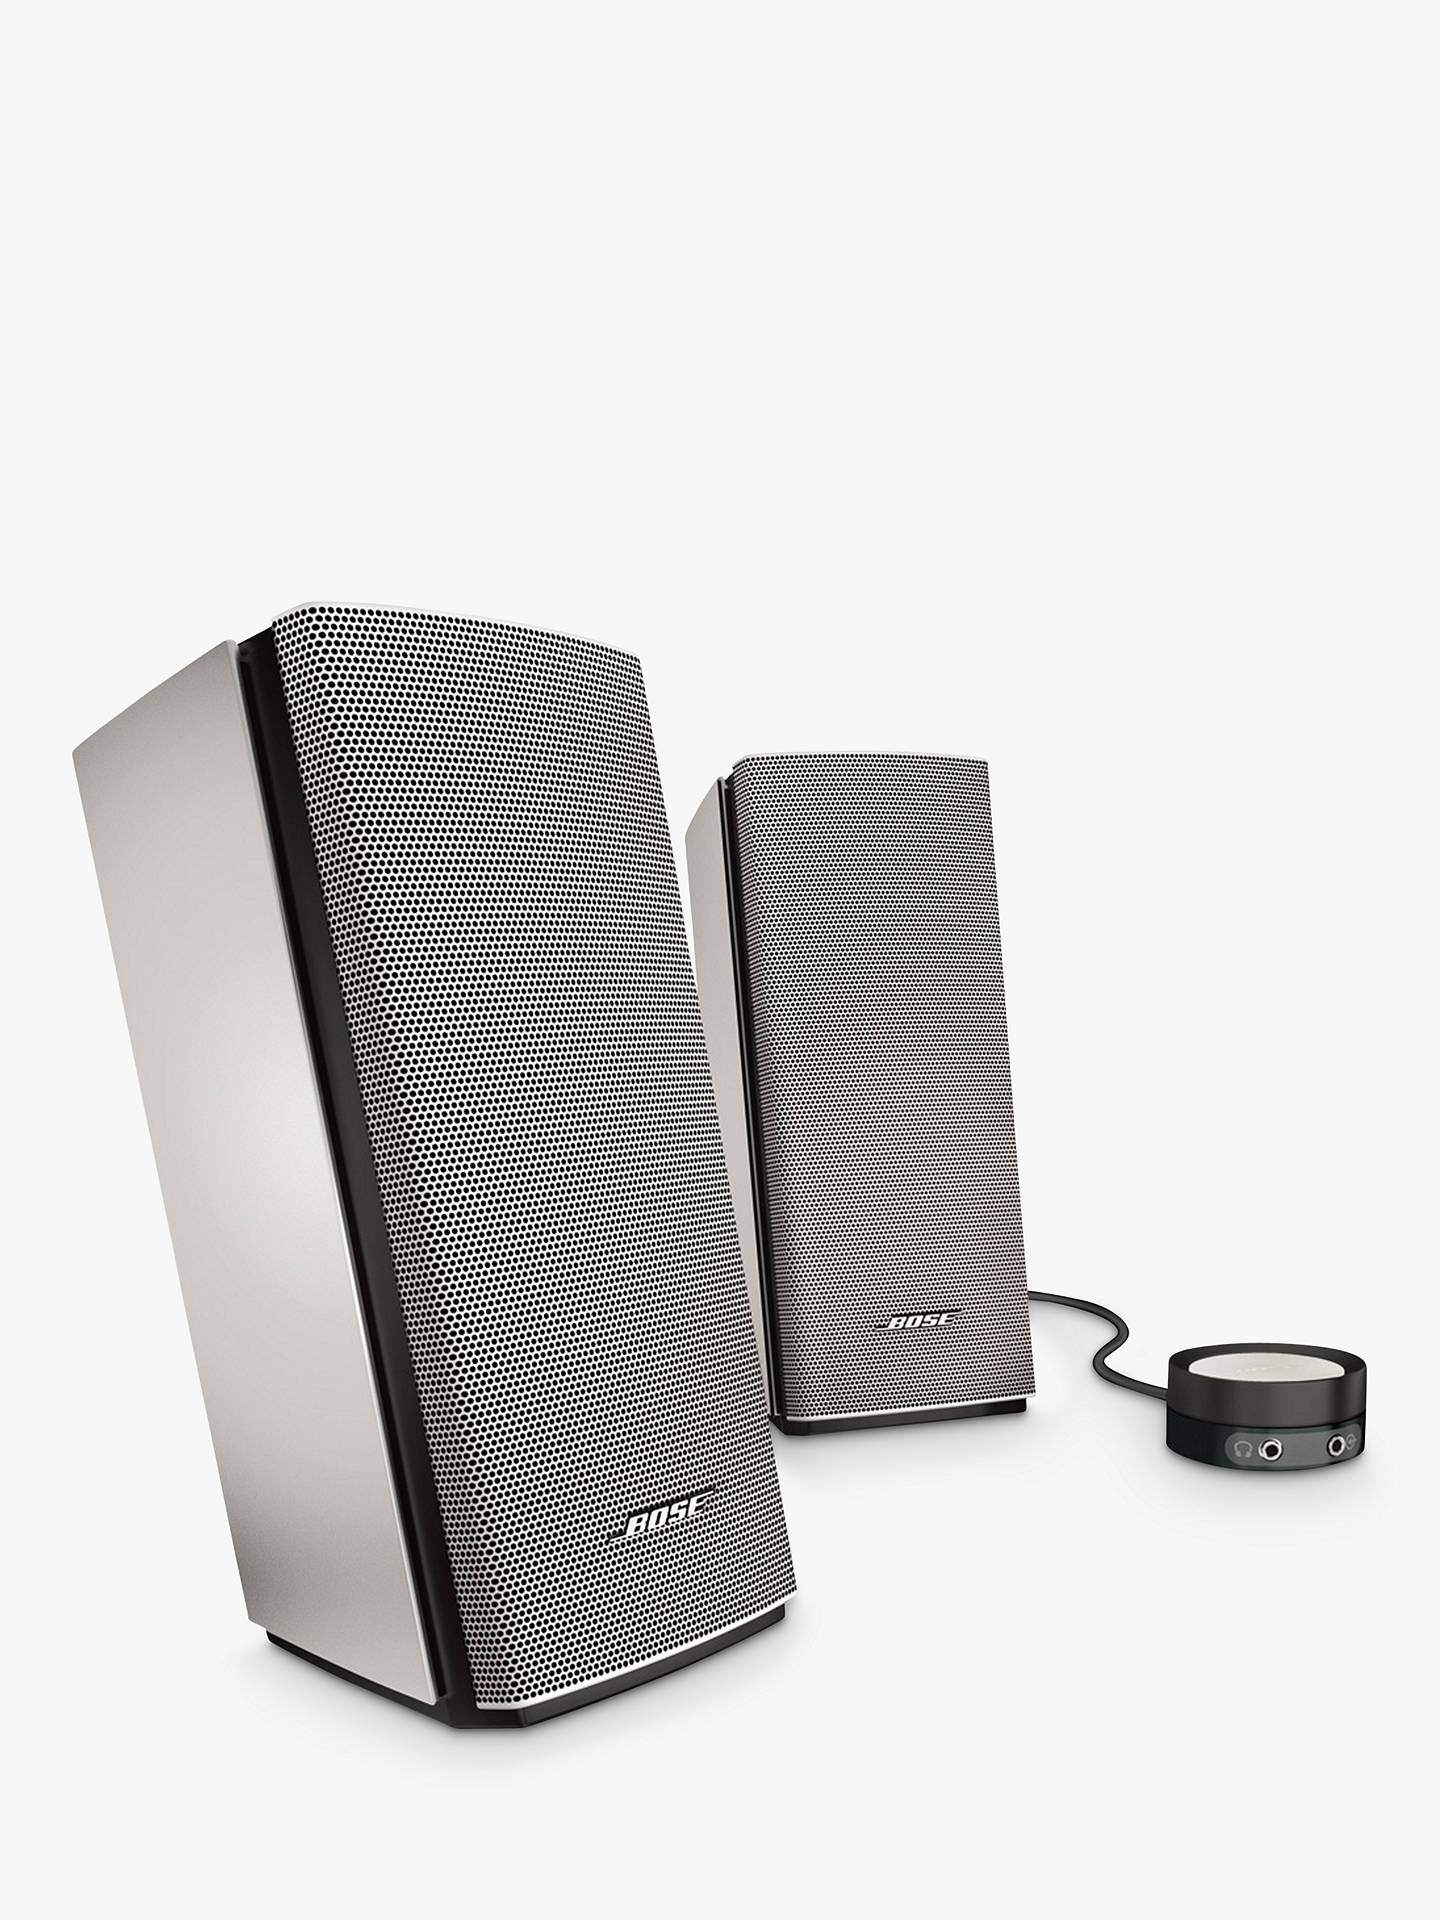 BuyBose® Companion 20 Multimedia Speaker System, Series 2 Online at johnlewis.com